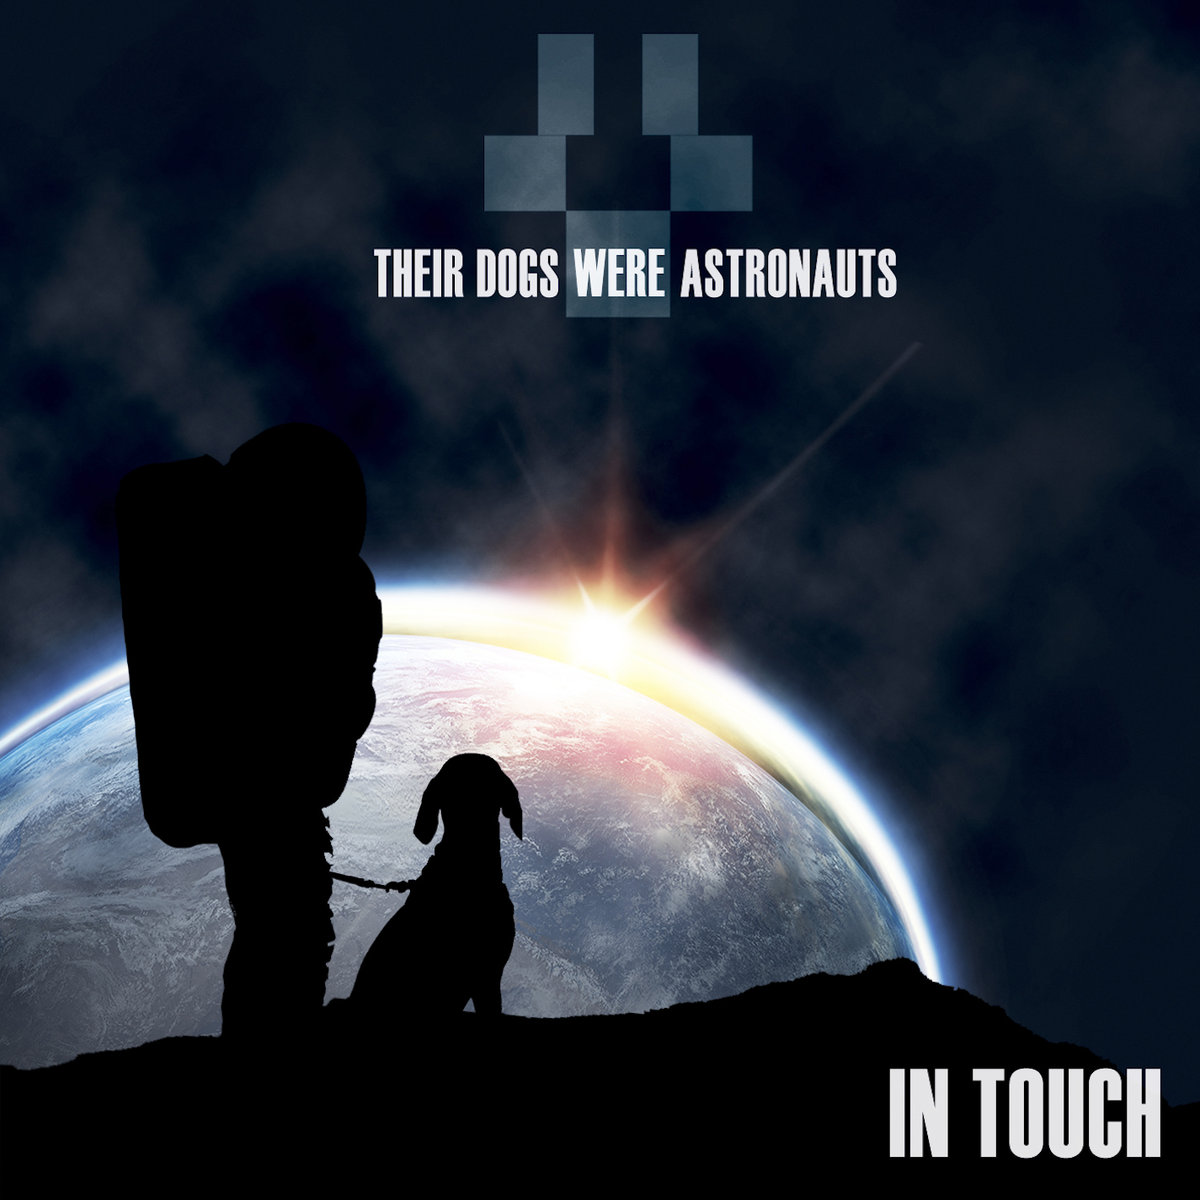 Their Dogs Were Astronauts - Systematic Warnings Pt.2 @ 'In Touch' album (instrumental metal, metal)